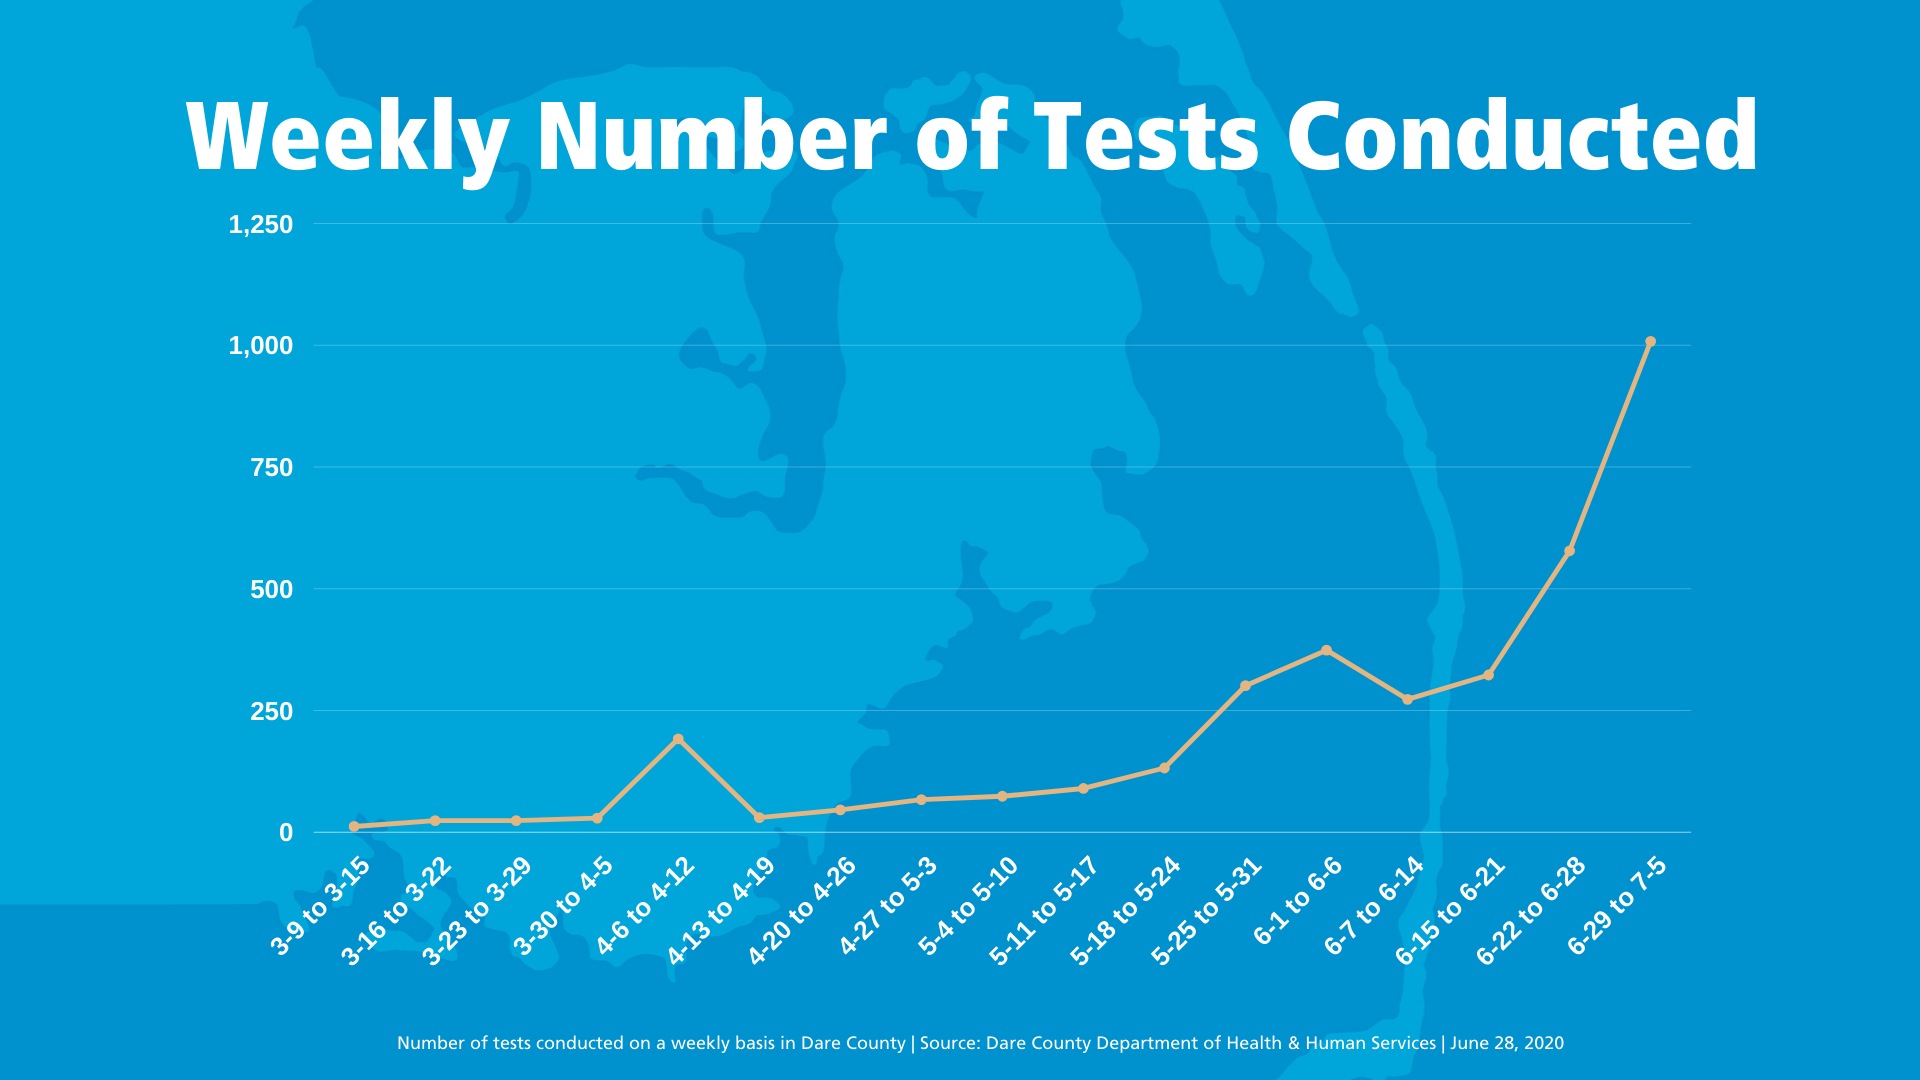 Weekly Number of Tests Conducted, graph shows increase over the last week